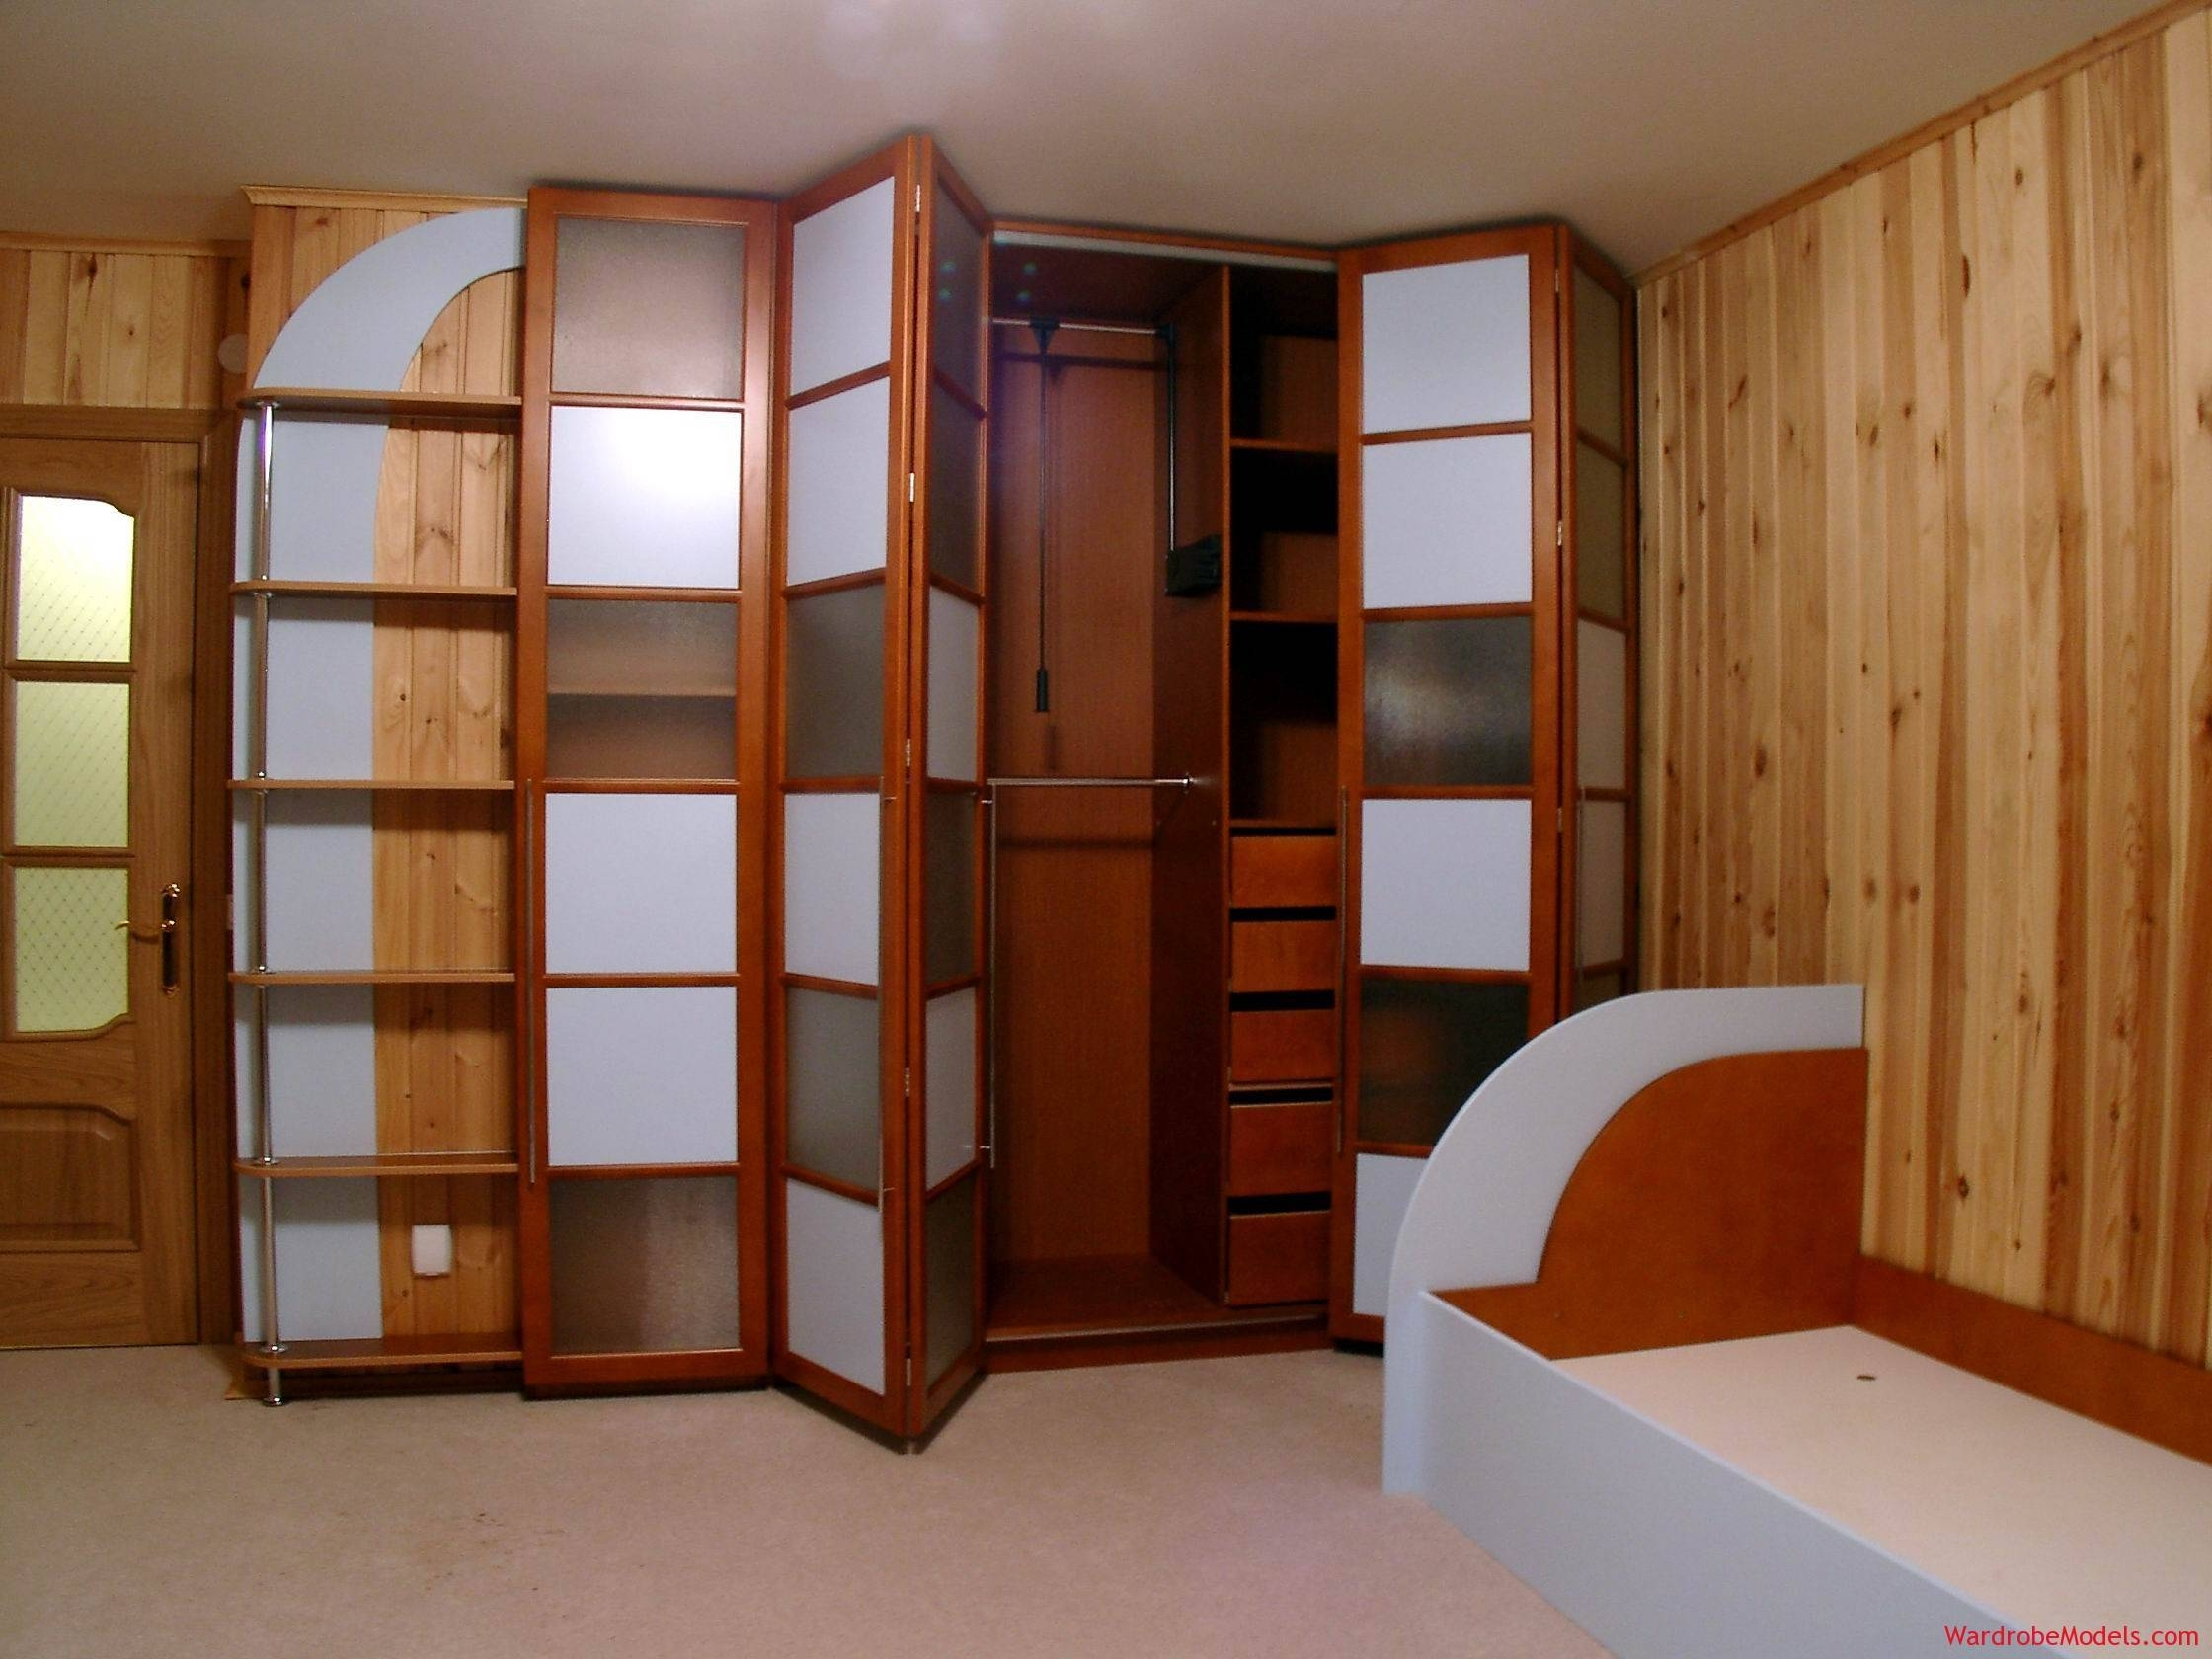 Wooden Wardrobe Cabinets, Wood Cabinet Designs For Bedroom Home Within Dark Wood Wardrobe With Mirror (View 30 of 30)